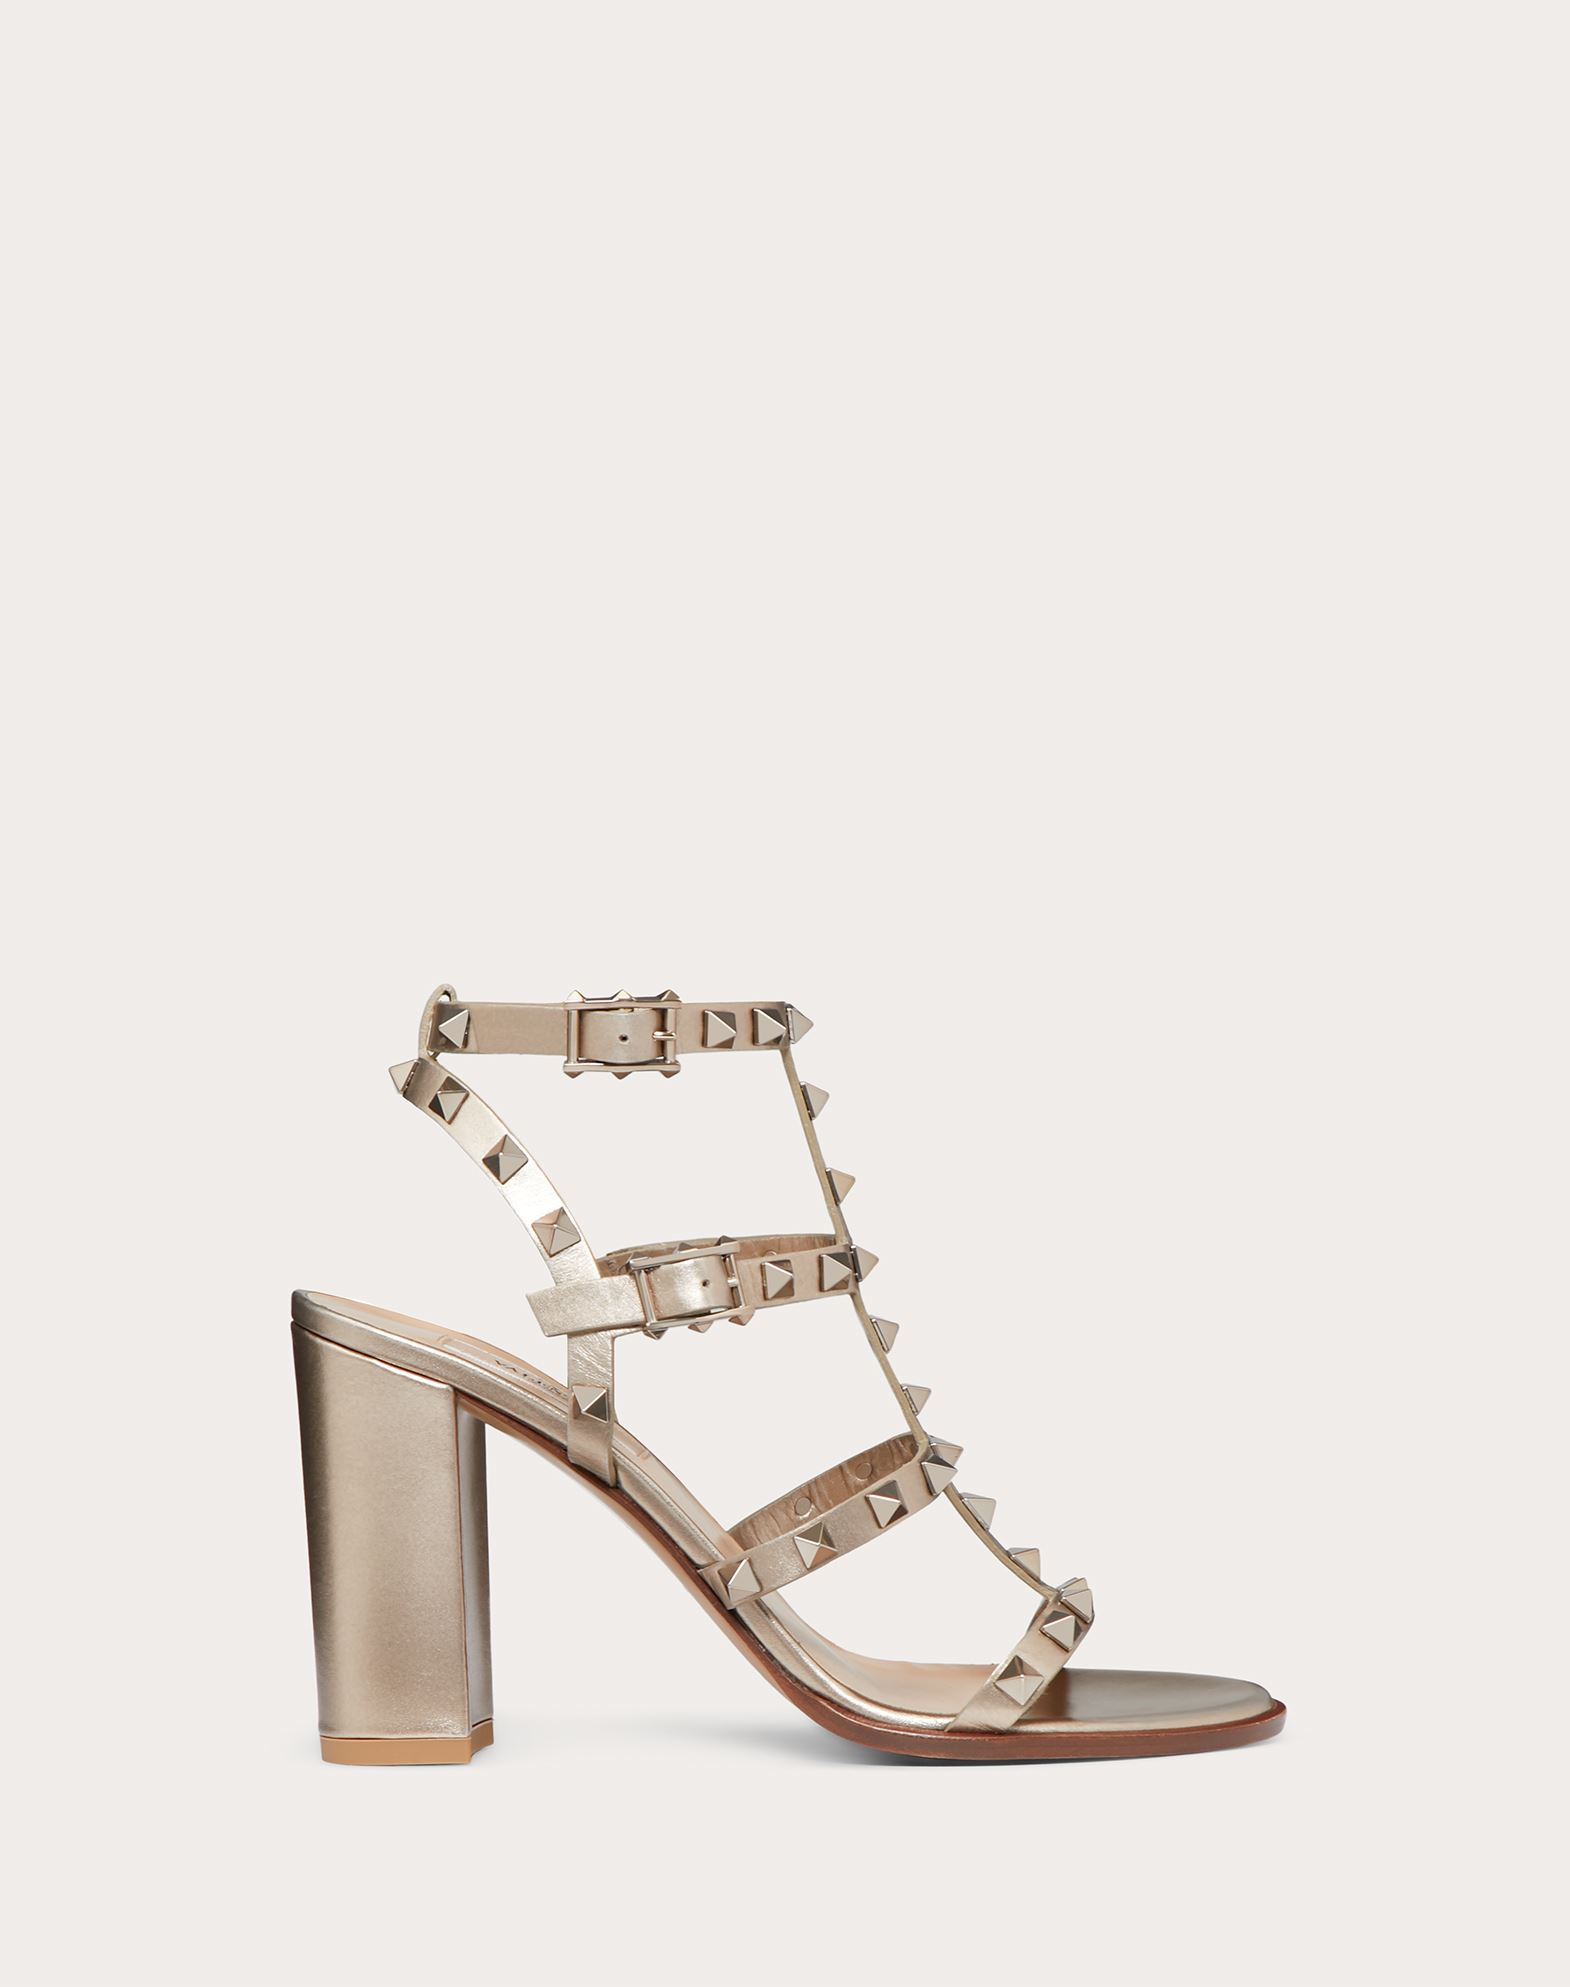 Rockstud Metallic Calfskin Leather Ankle Strap Sandal 90 mm